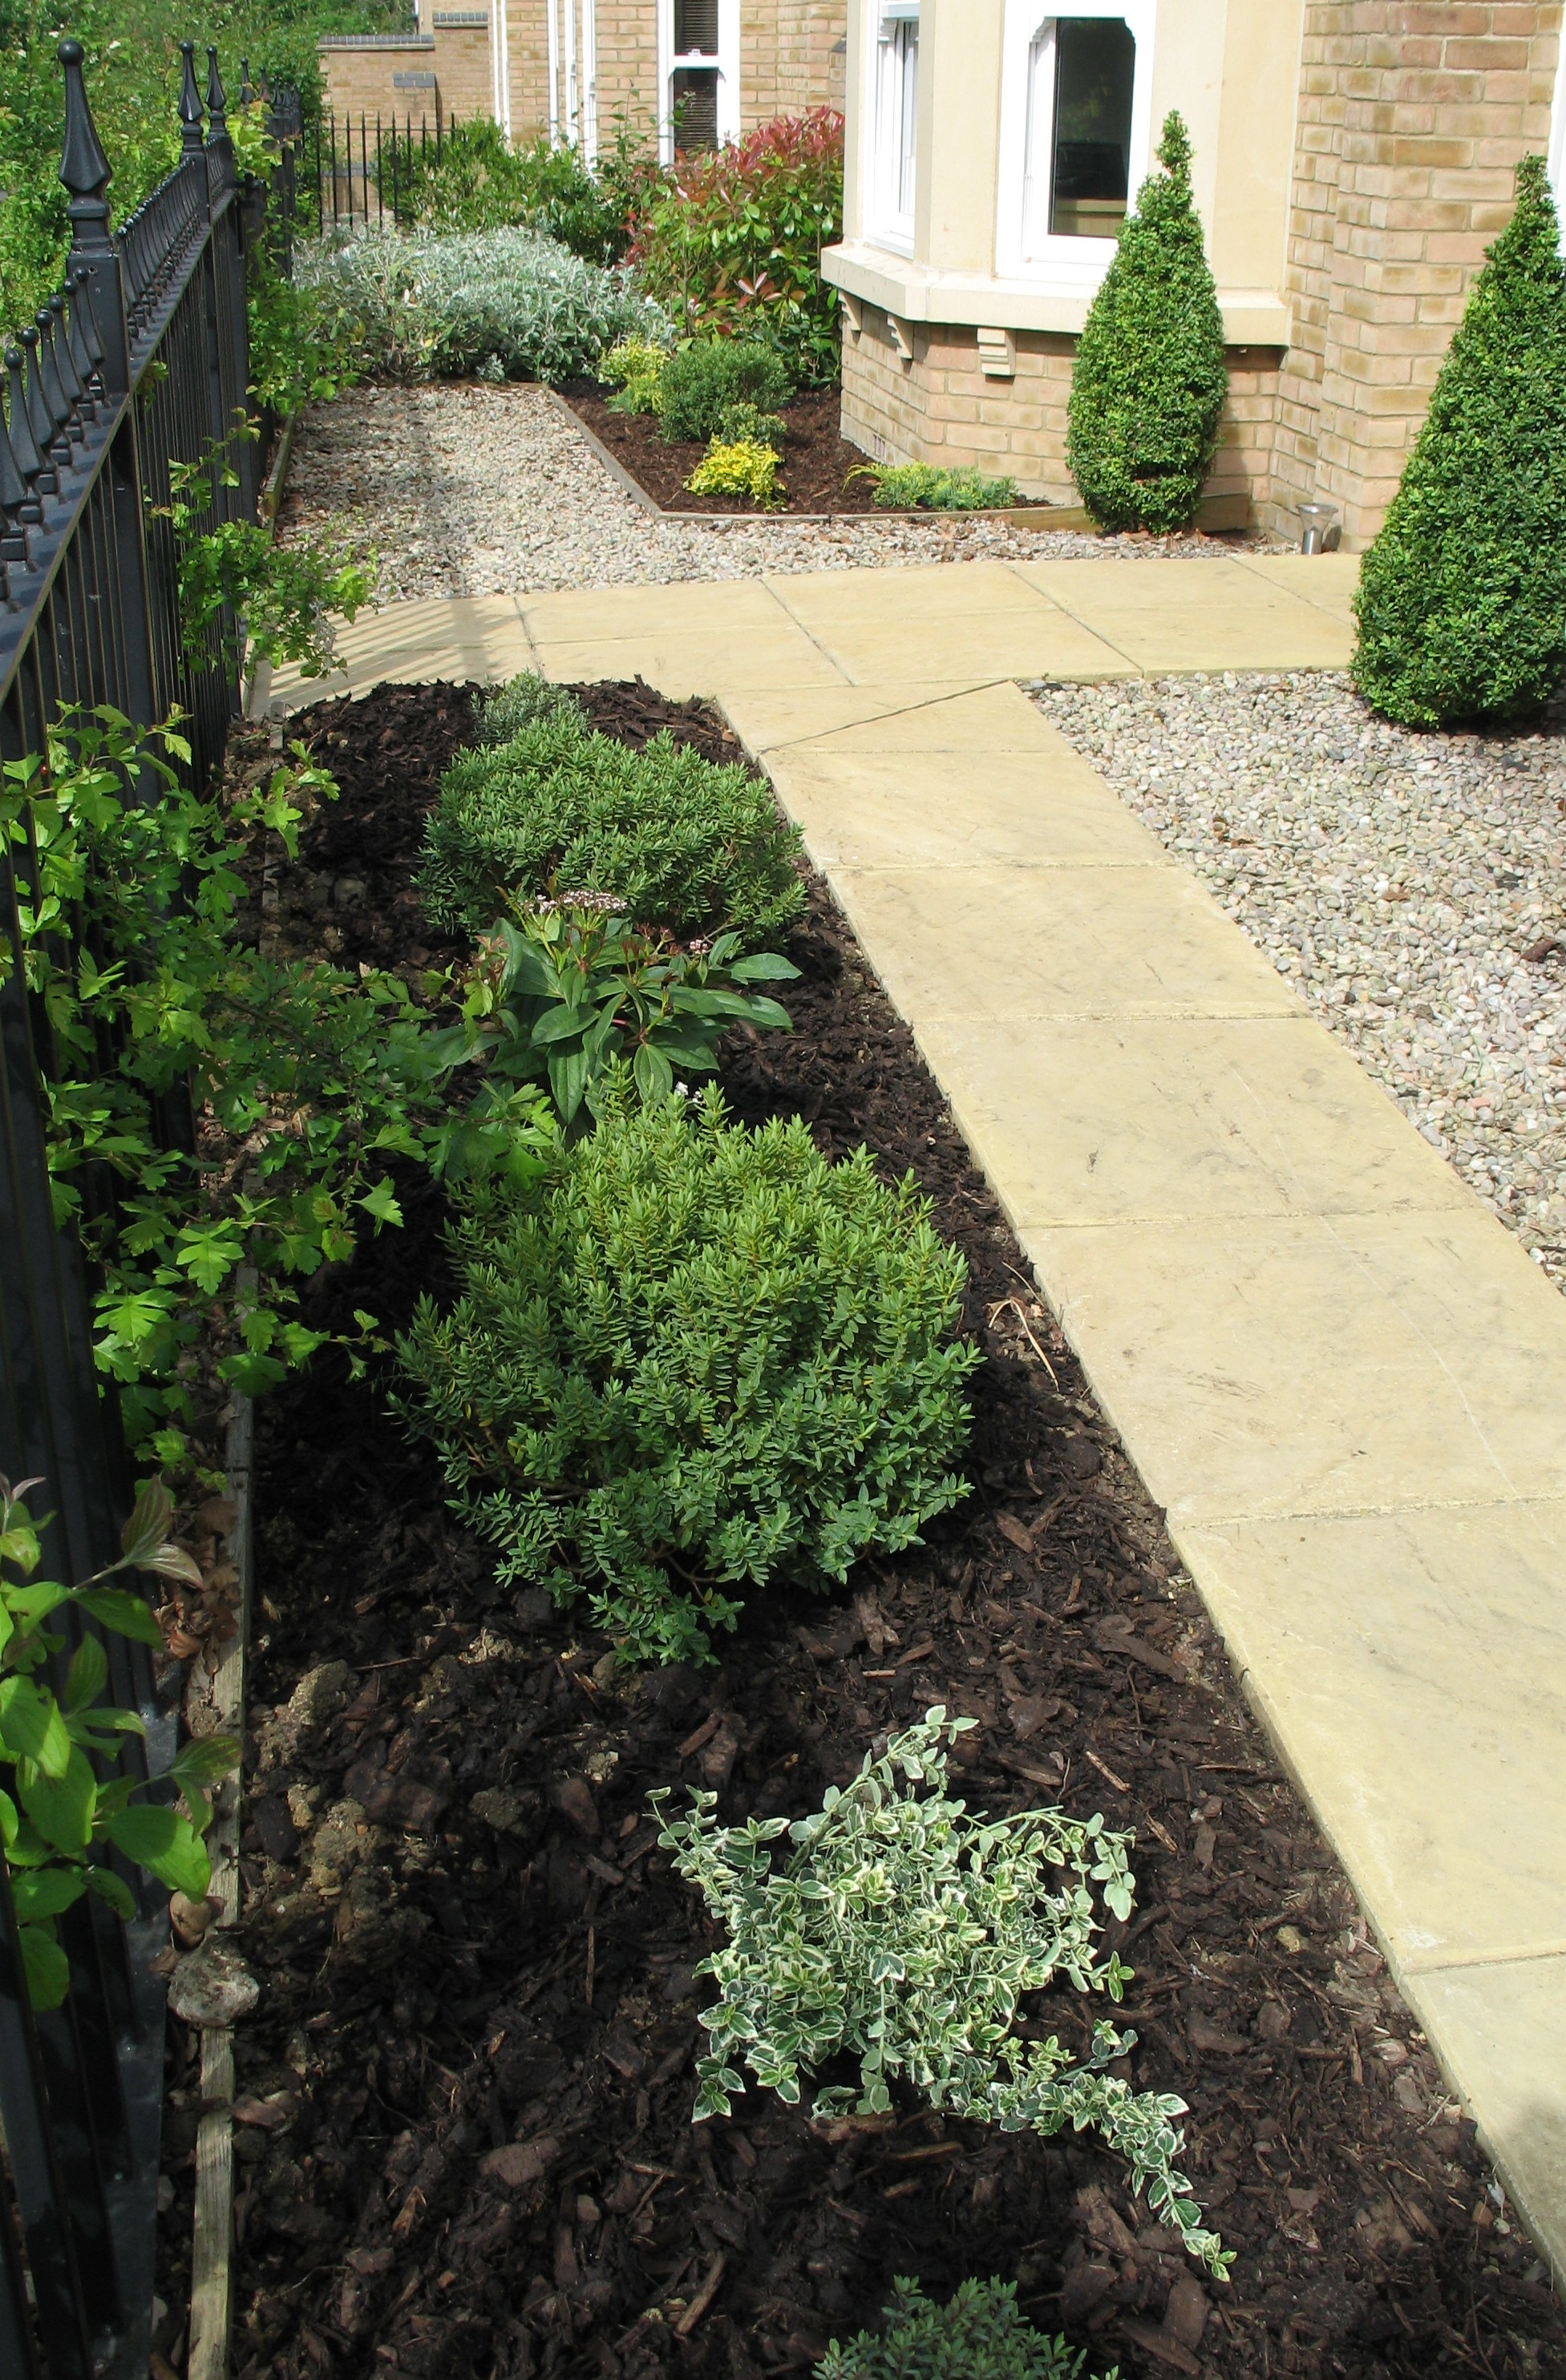 Easy plants for a front garden karen tizzard garden design for Simple low maintenance gardens